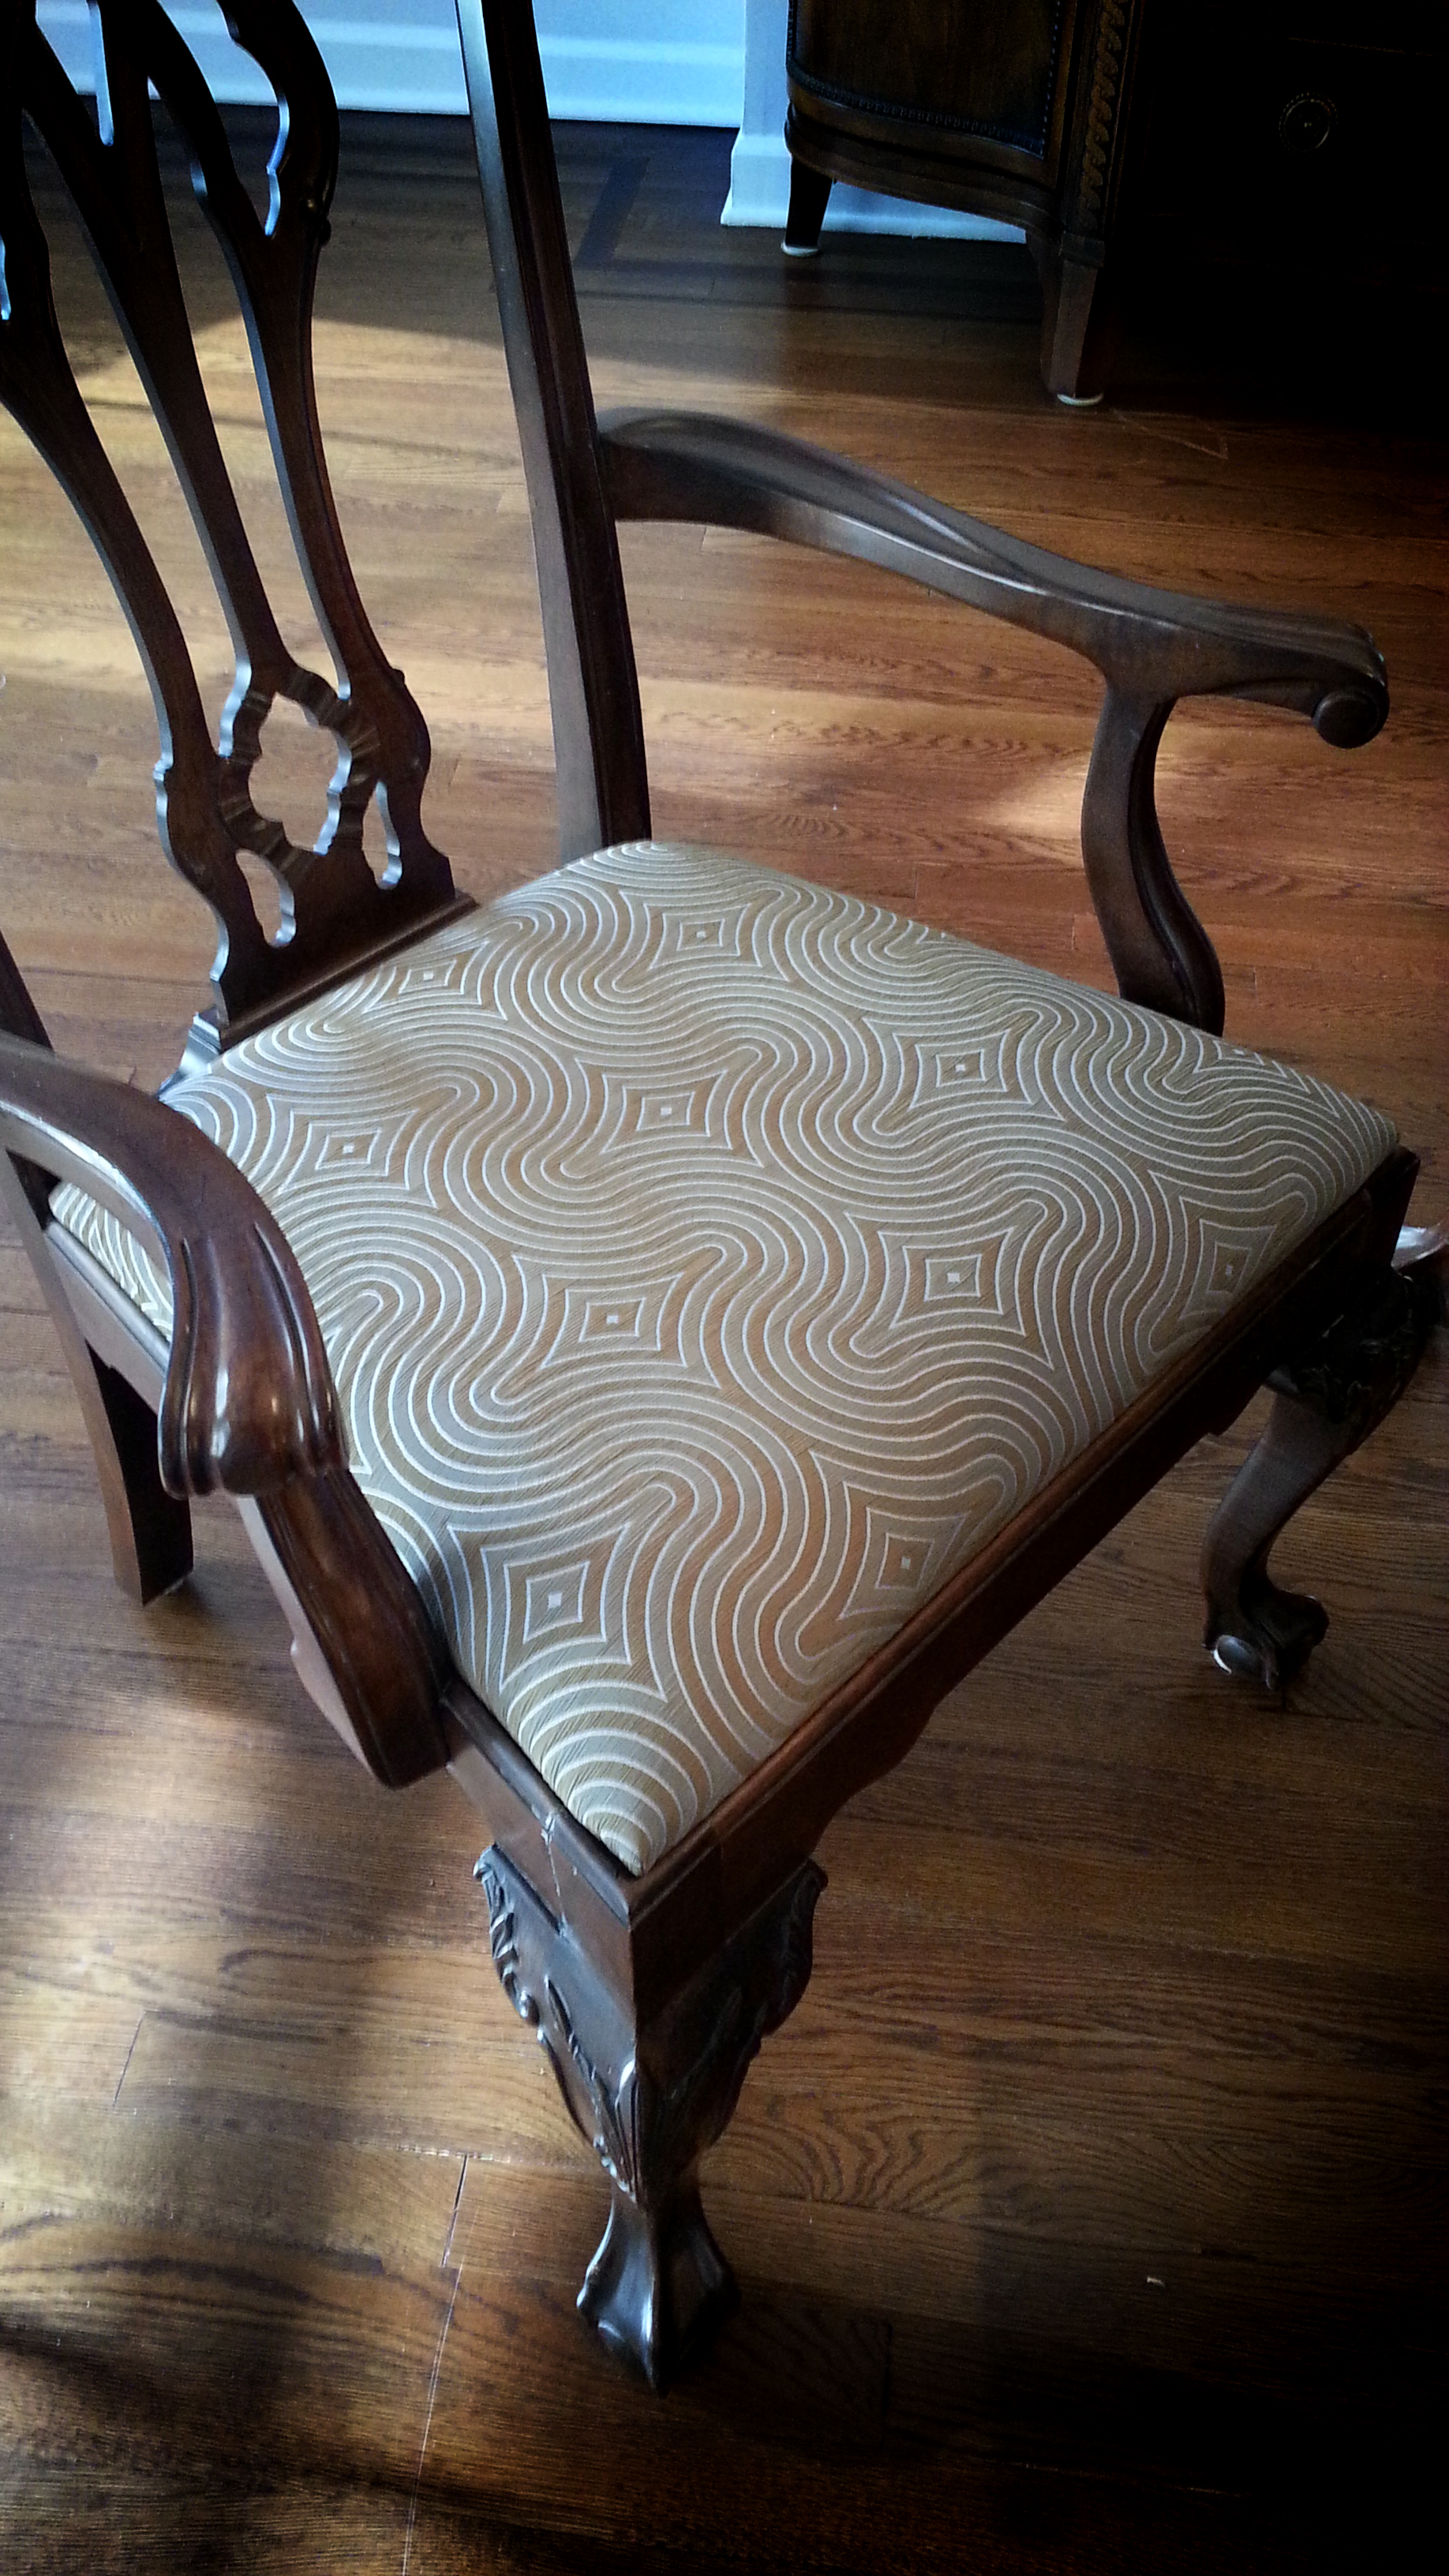 recovered antique dining chairs.